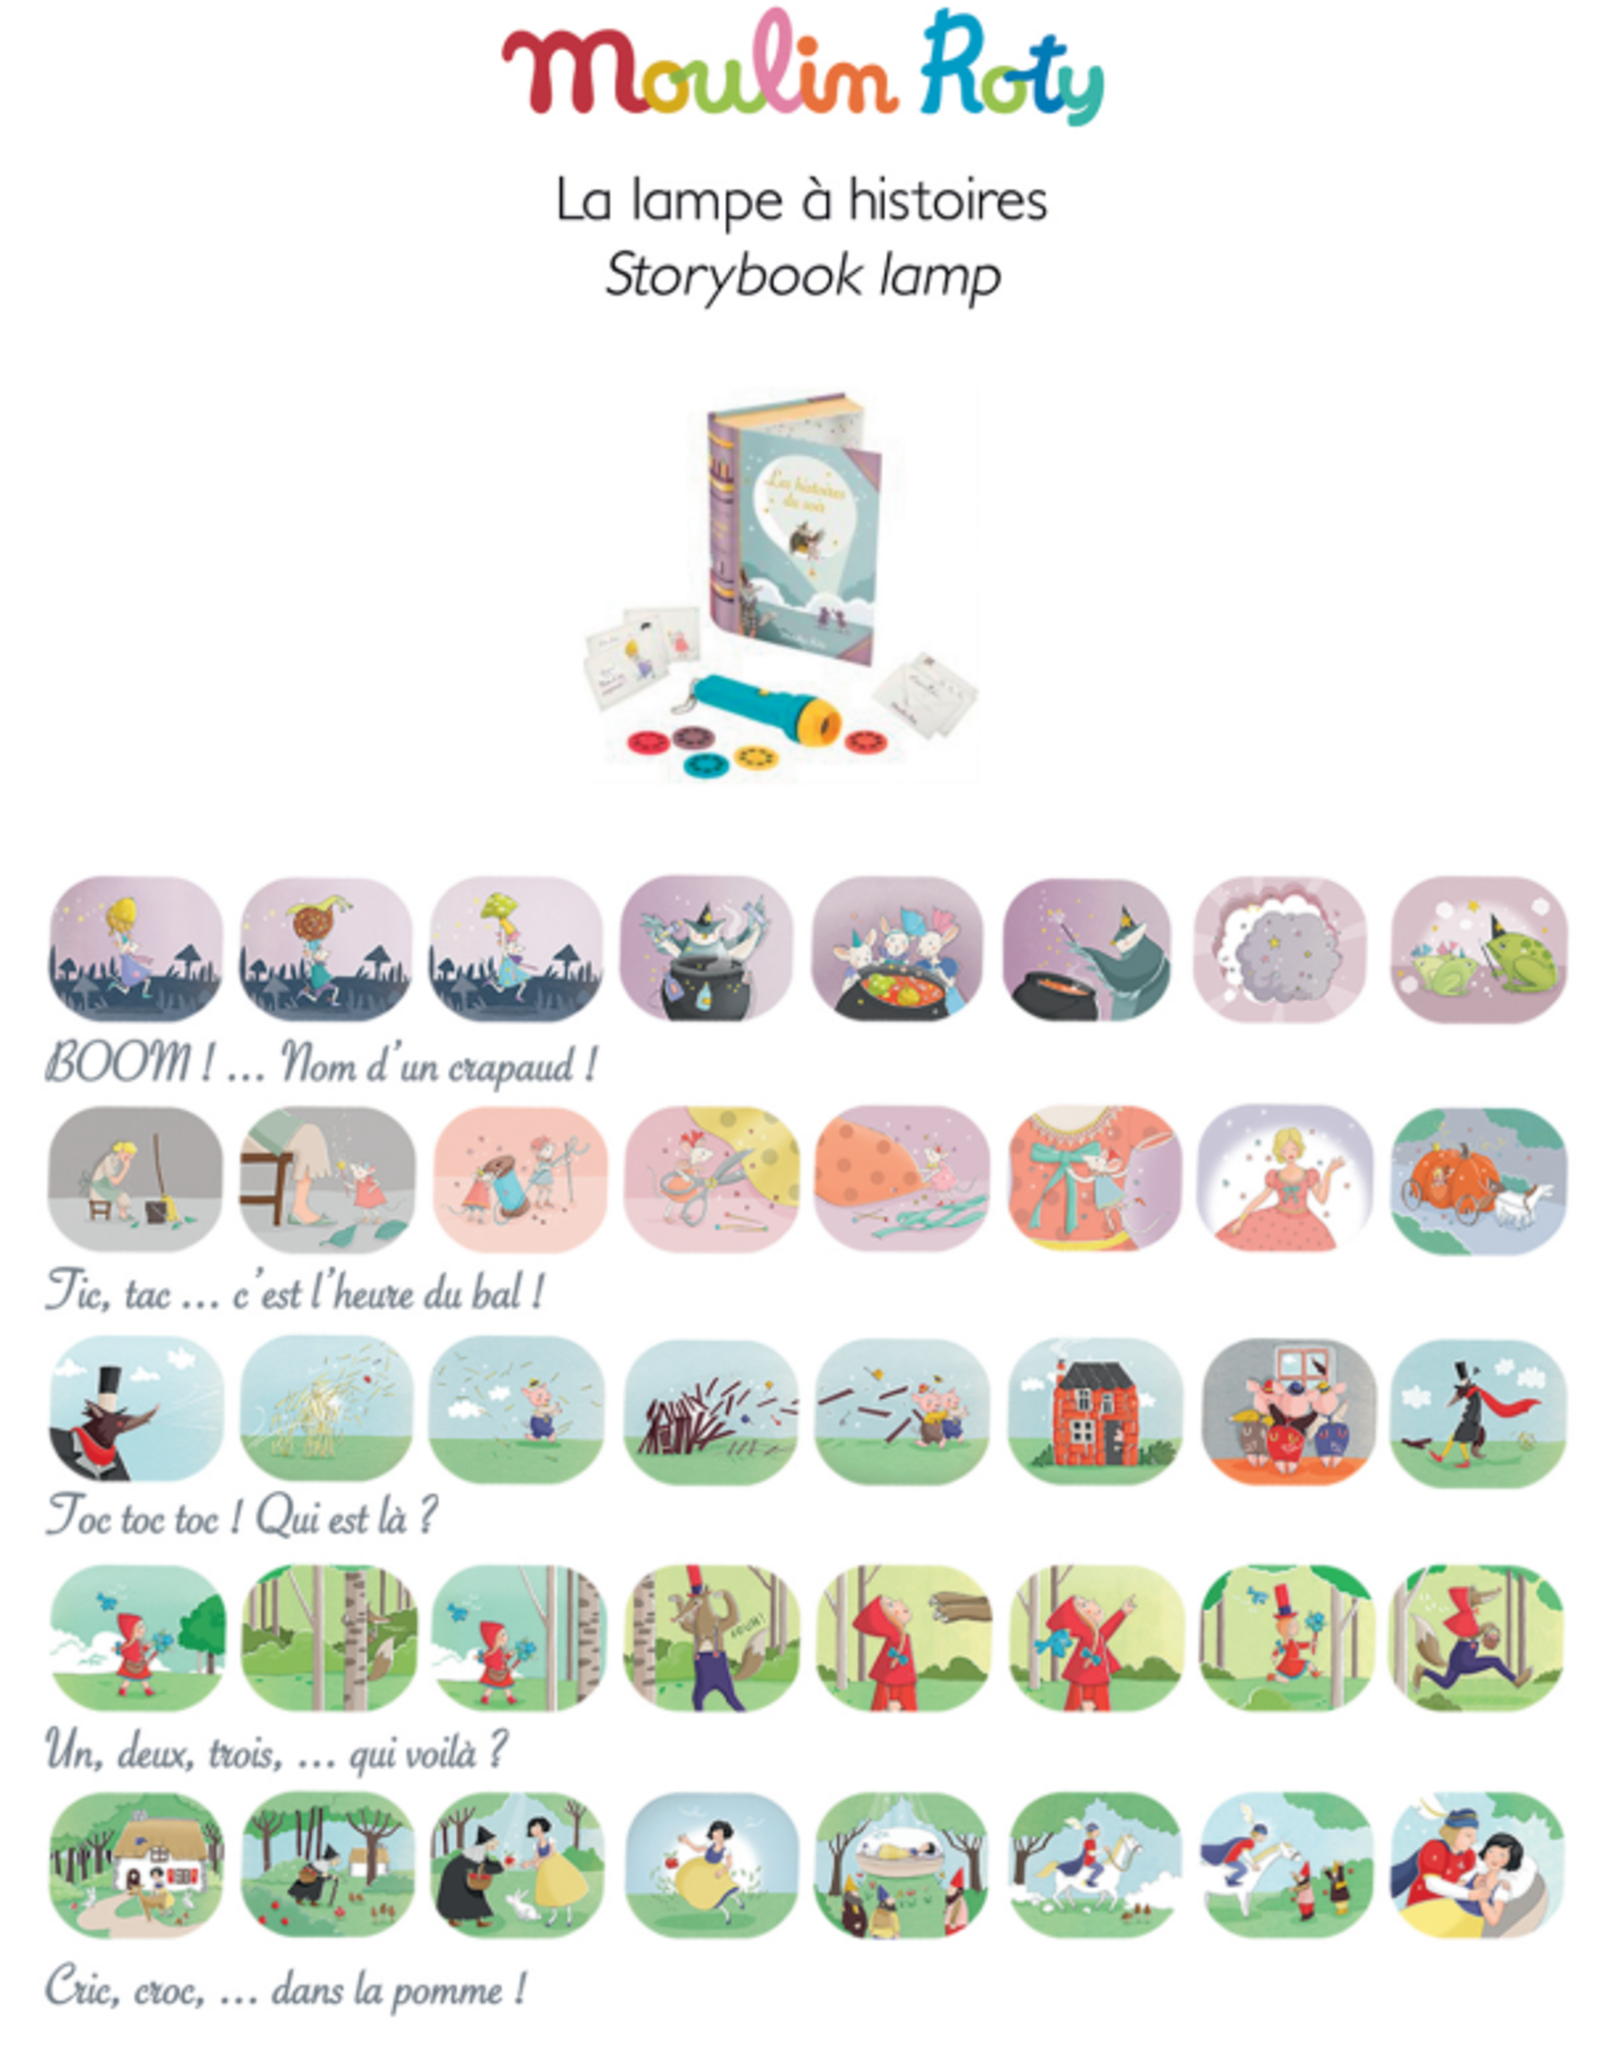 Moulin Roty Storybook Torch Set - Good night stories